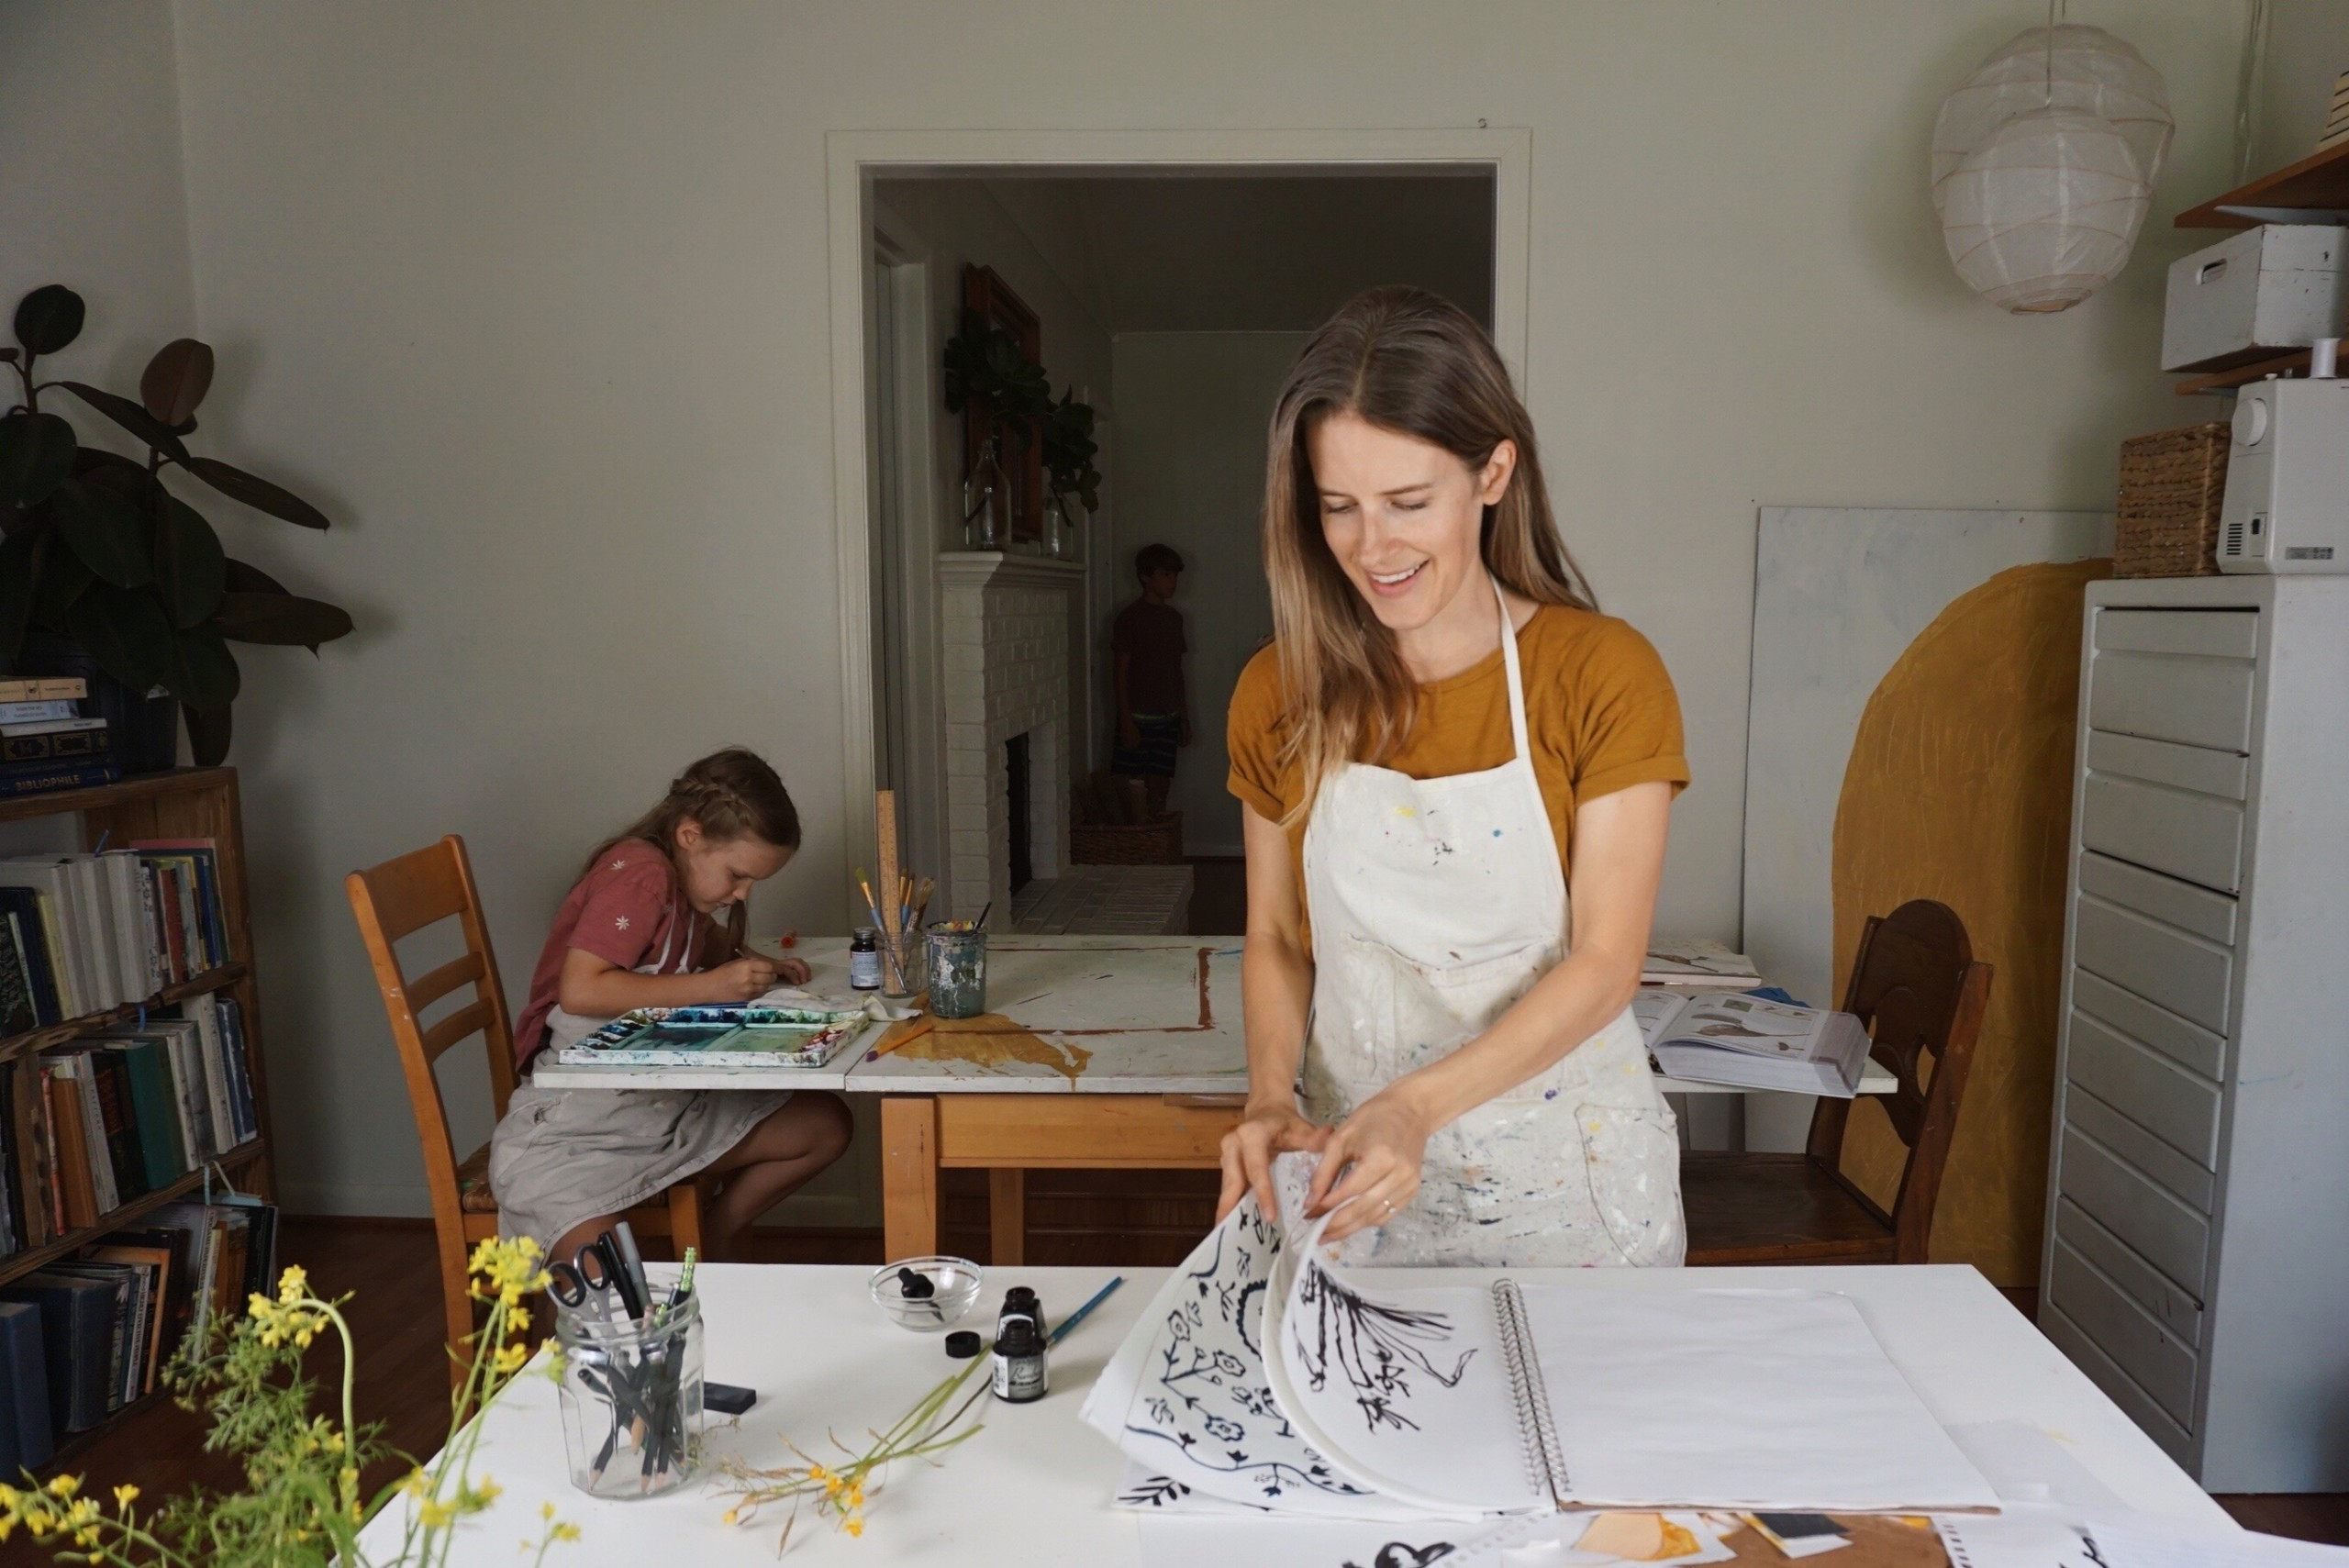 Rachel Smith works on a project. In the background, her daughter draws at a table.